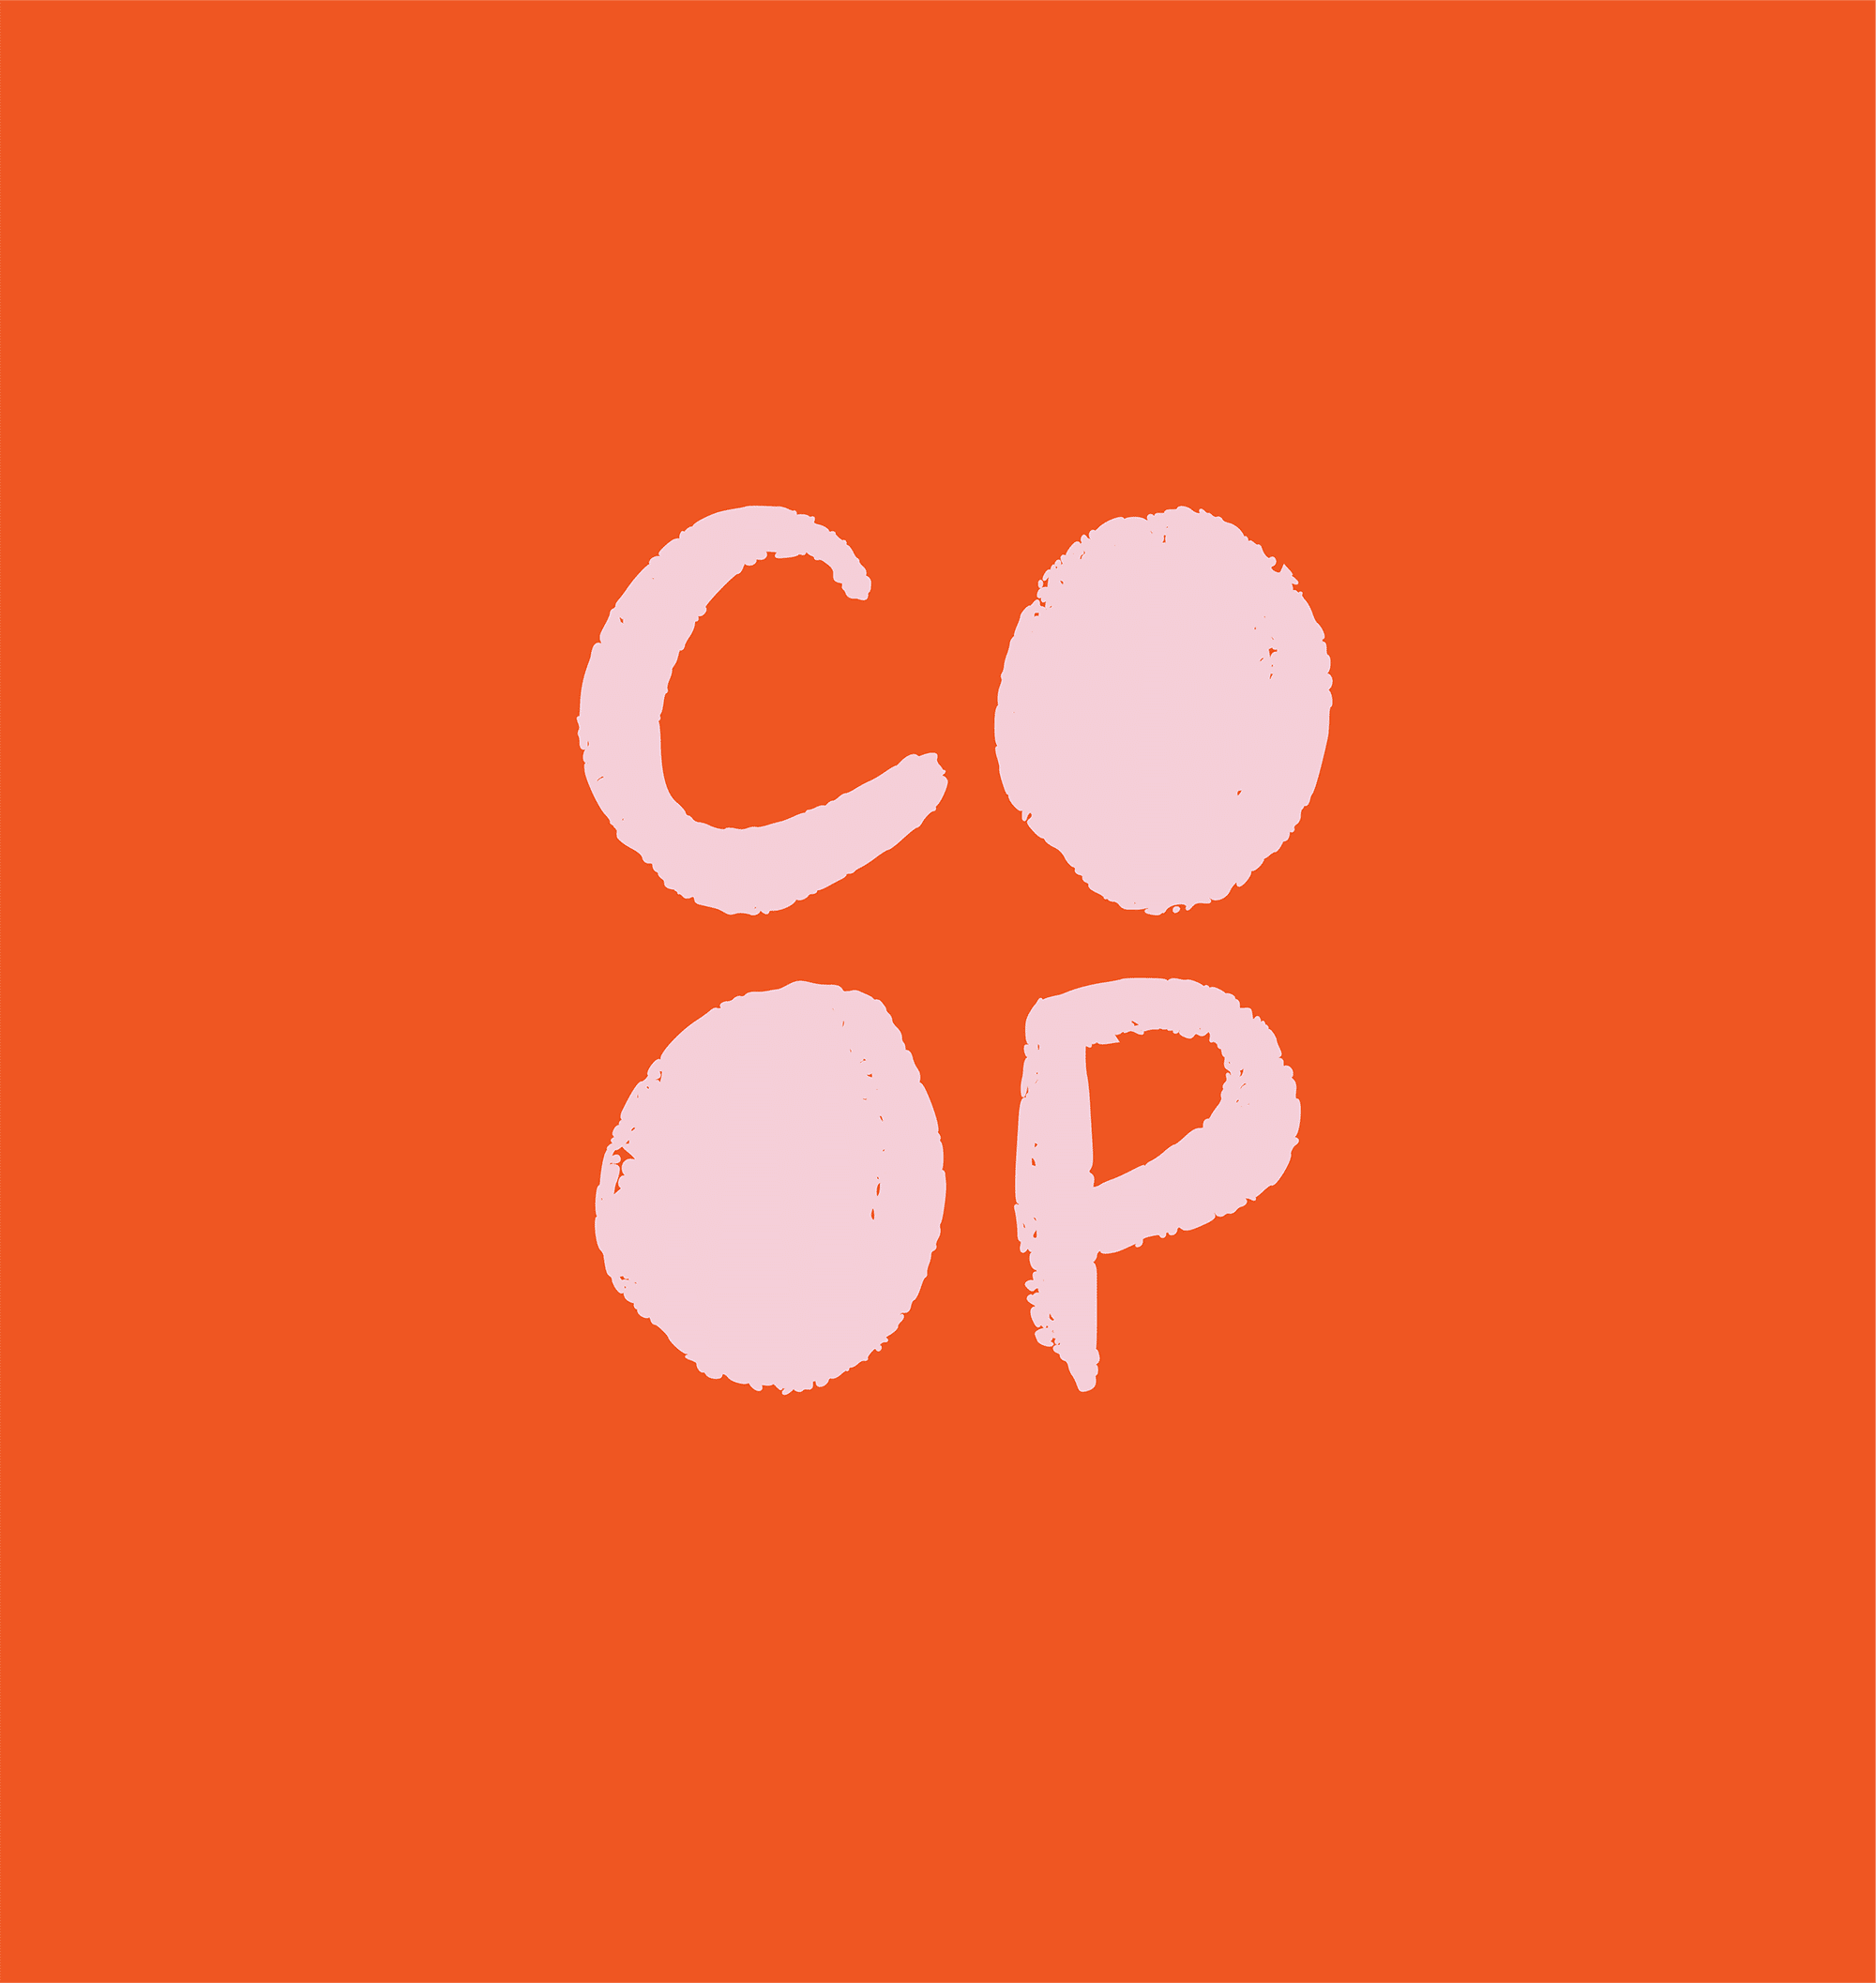 CO-OP Ramen | SDCO Partners